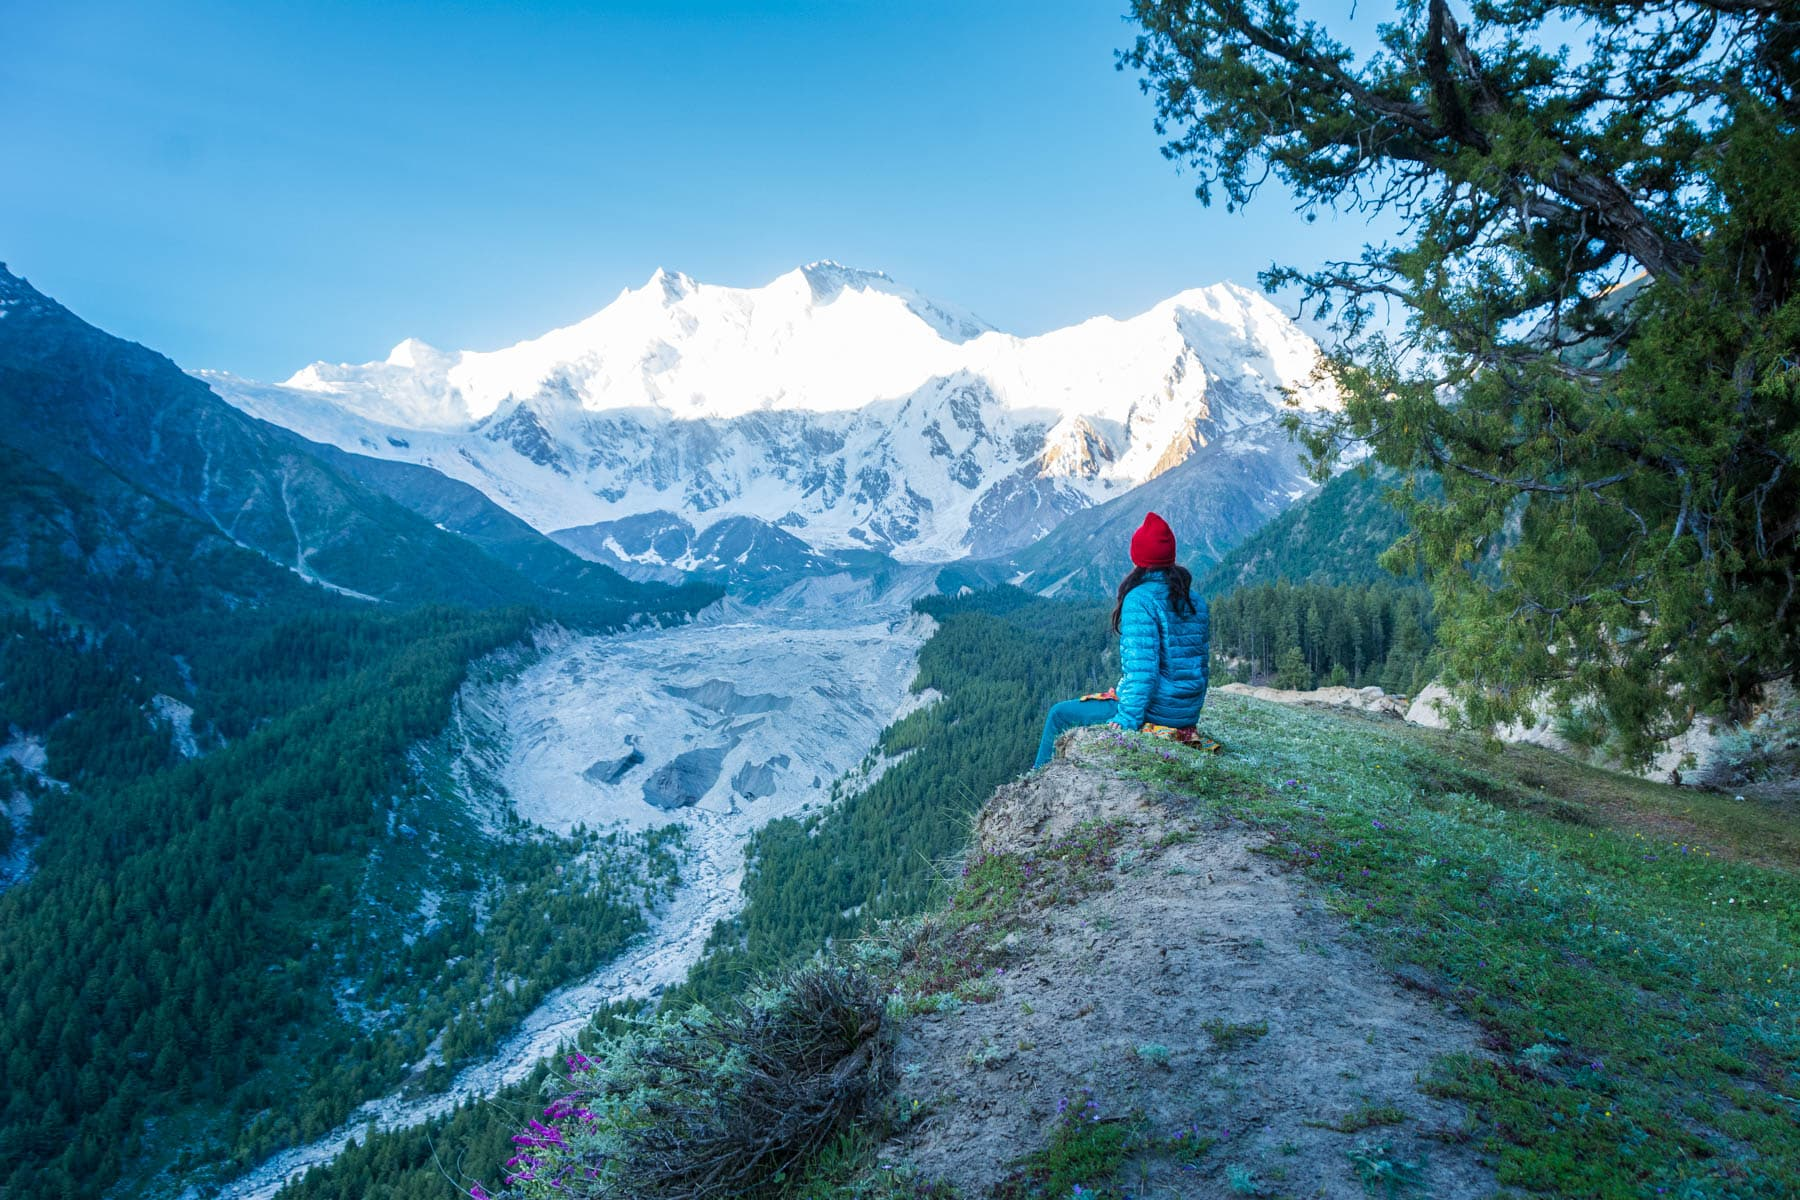 Pakistan bucket list - Sunrise over Nanga Parbat from Fairy Meadows - Lost With Purpose travel blog